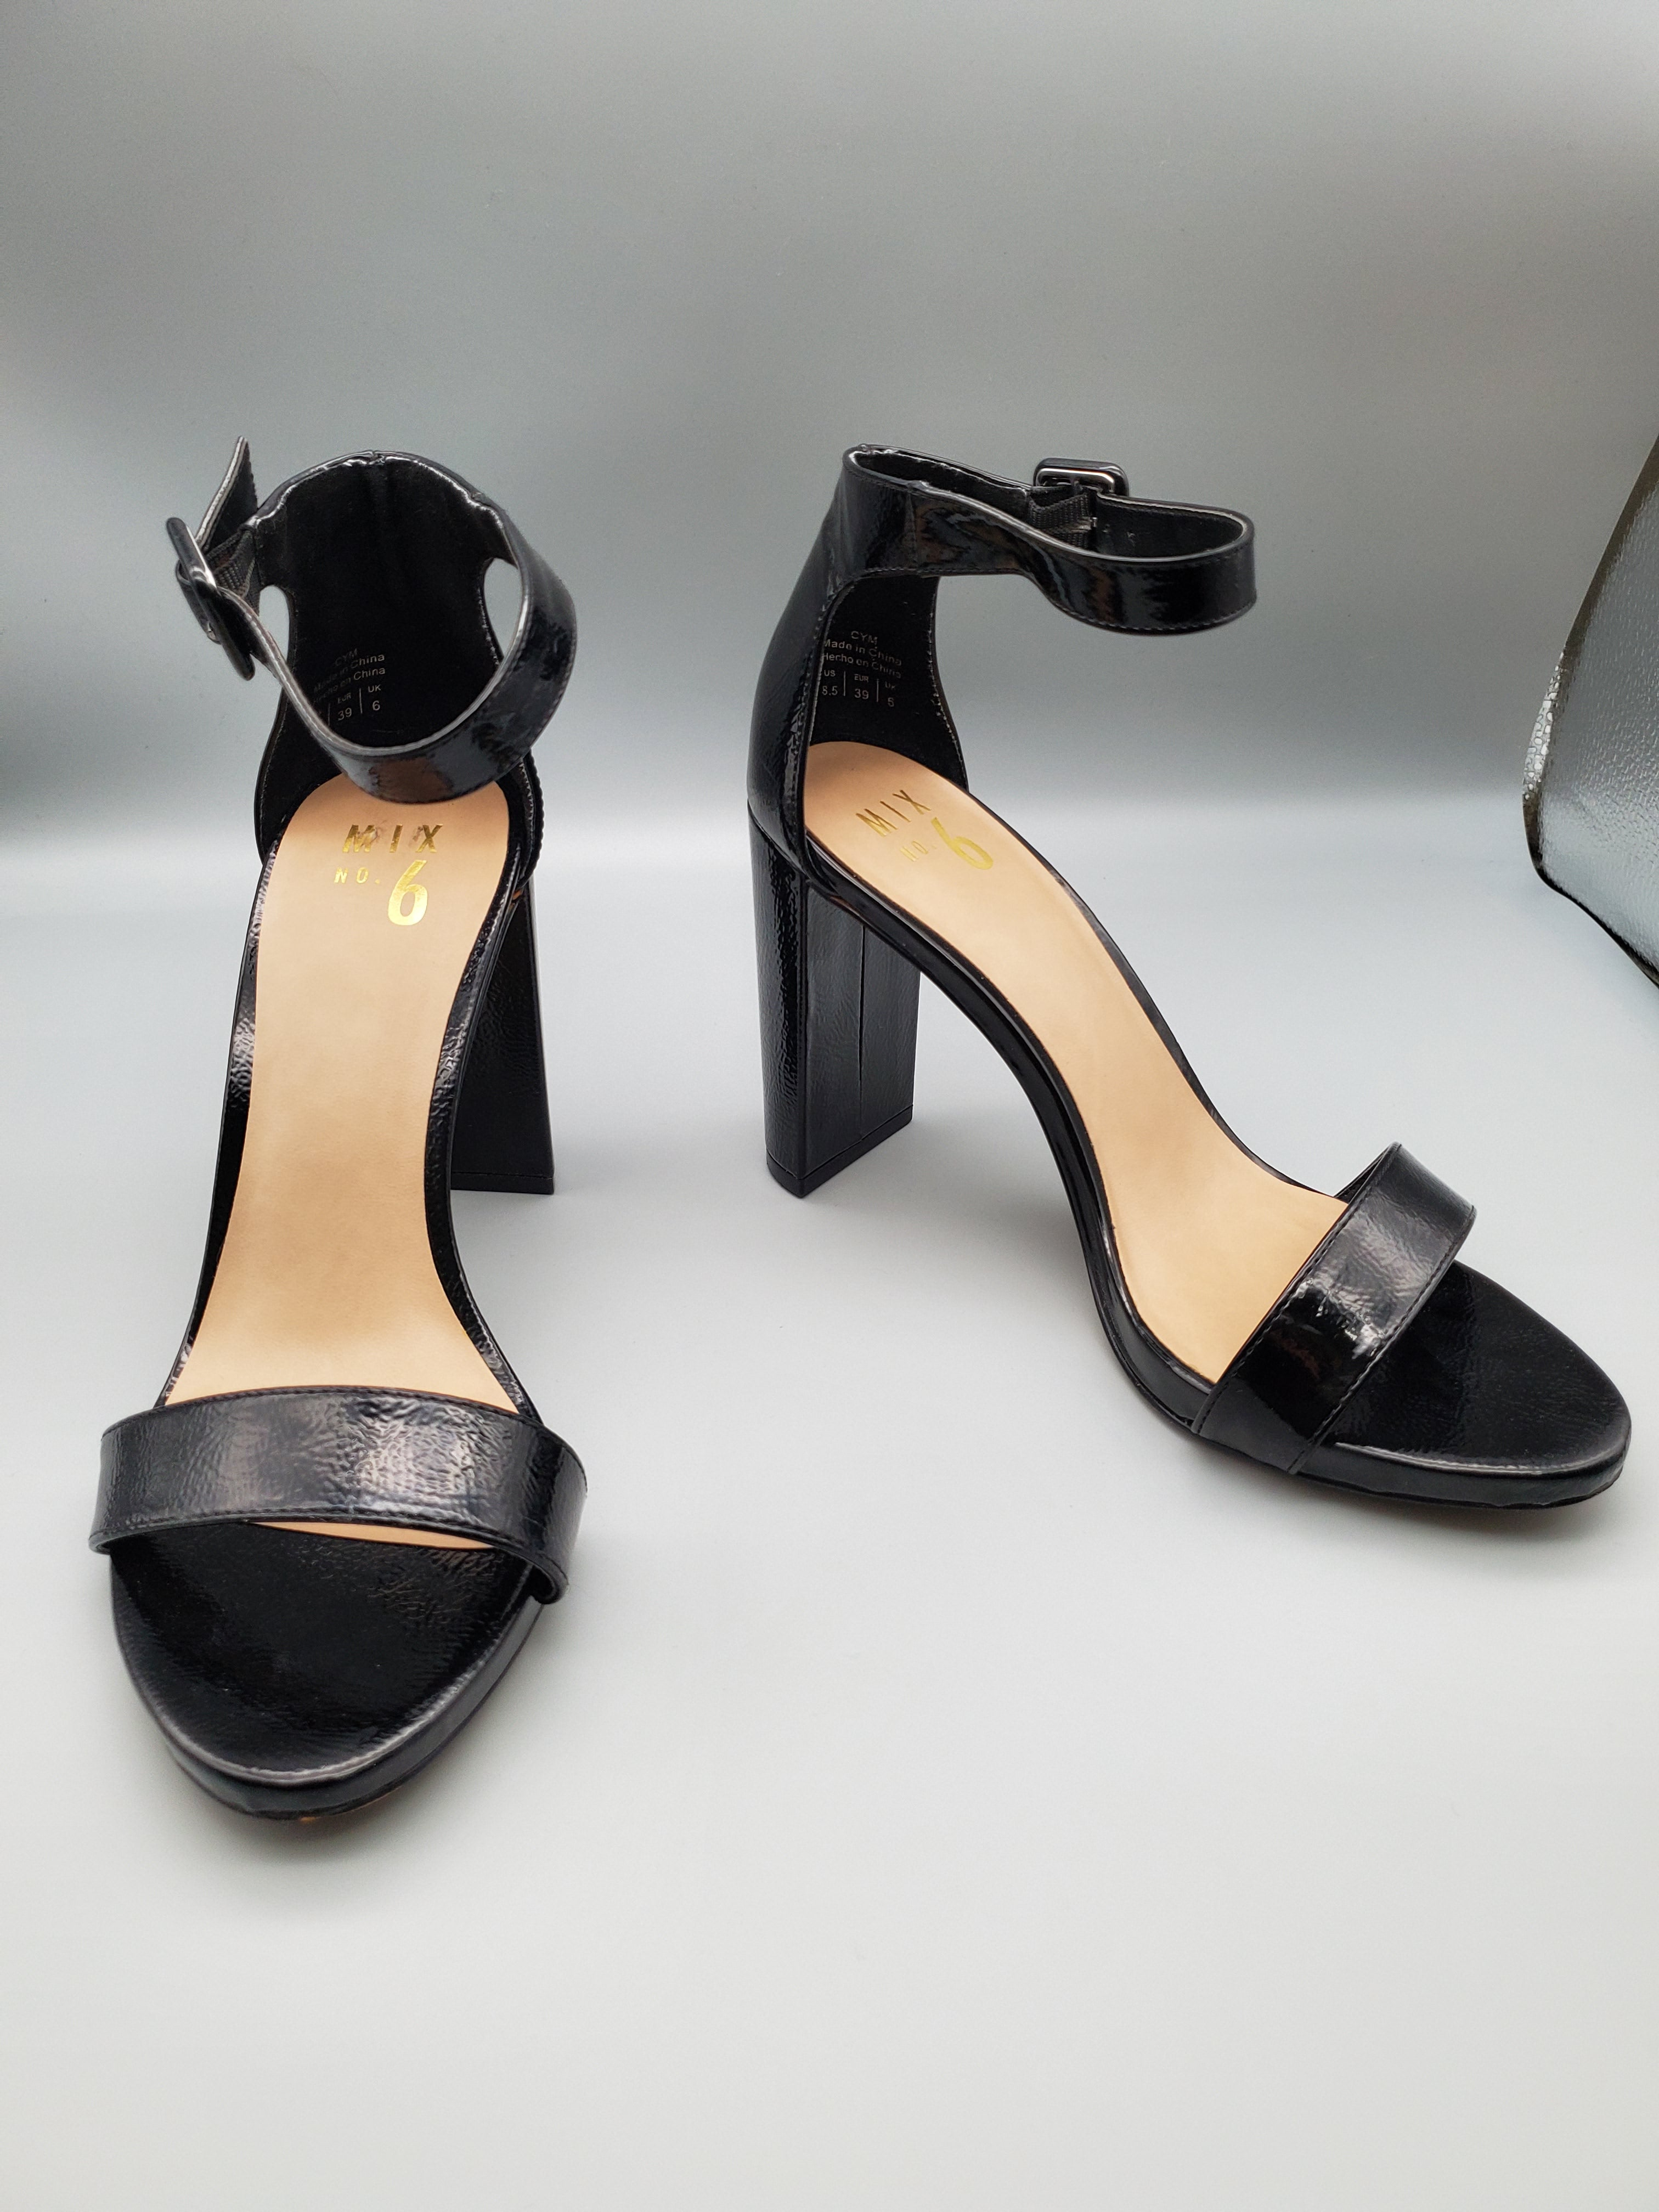 Primary Photo - BRAND: MIX NO 6 <BR>STYLE: SHOES HIGH HEEL <BR>COLOR: BLACK <BR>SIZE: 8.5 <BR>SKU: 115-115335-1958<BR>LITTLE TO NO WEAR/SCUFFING